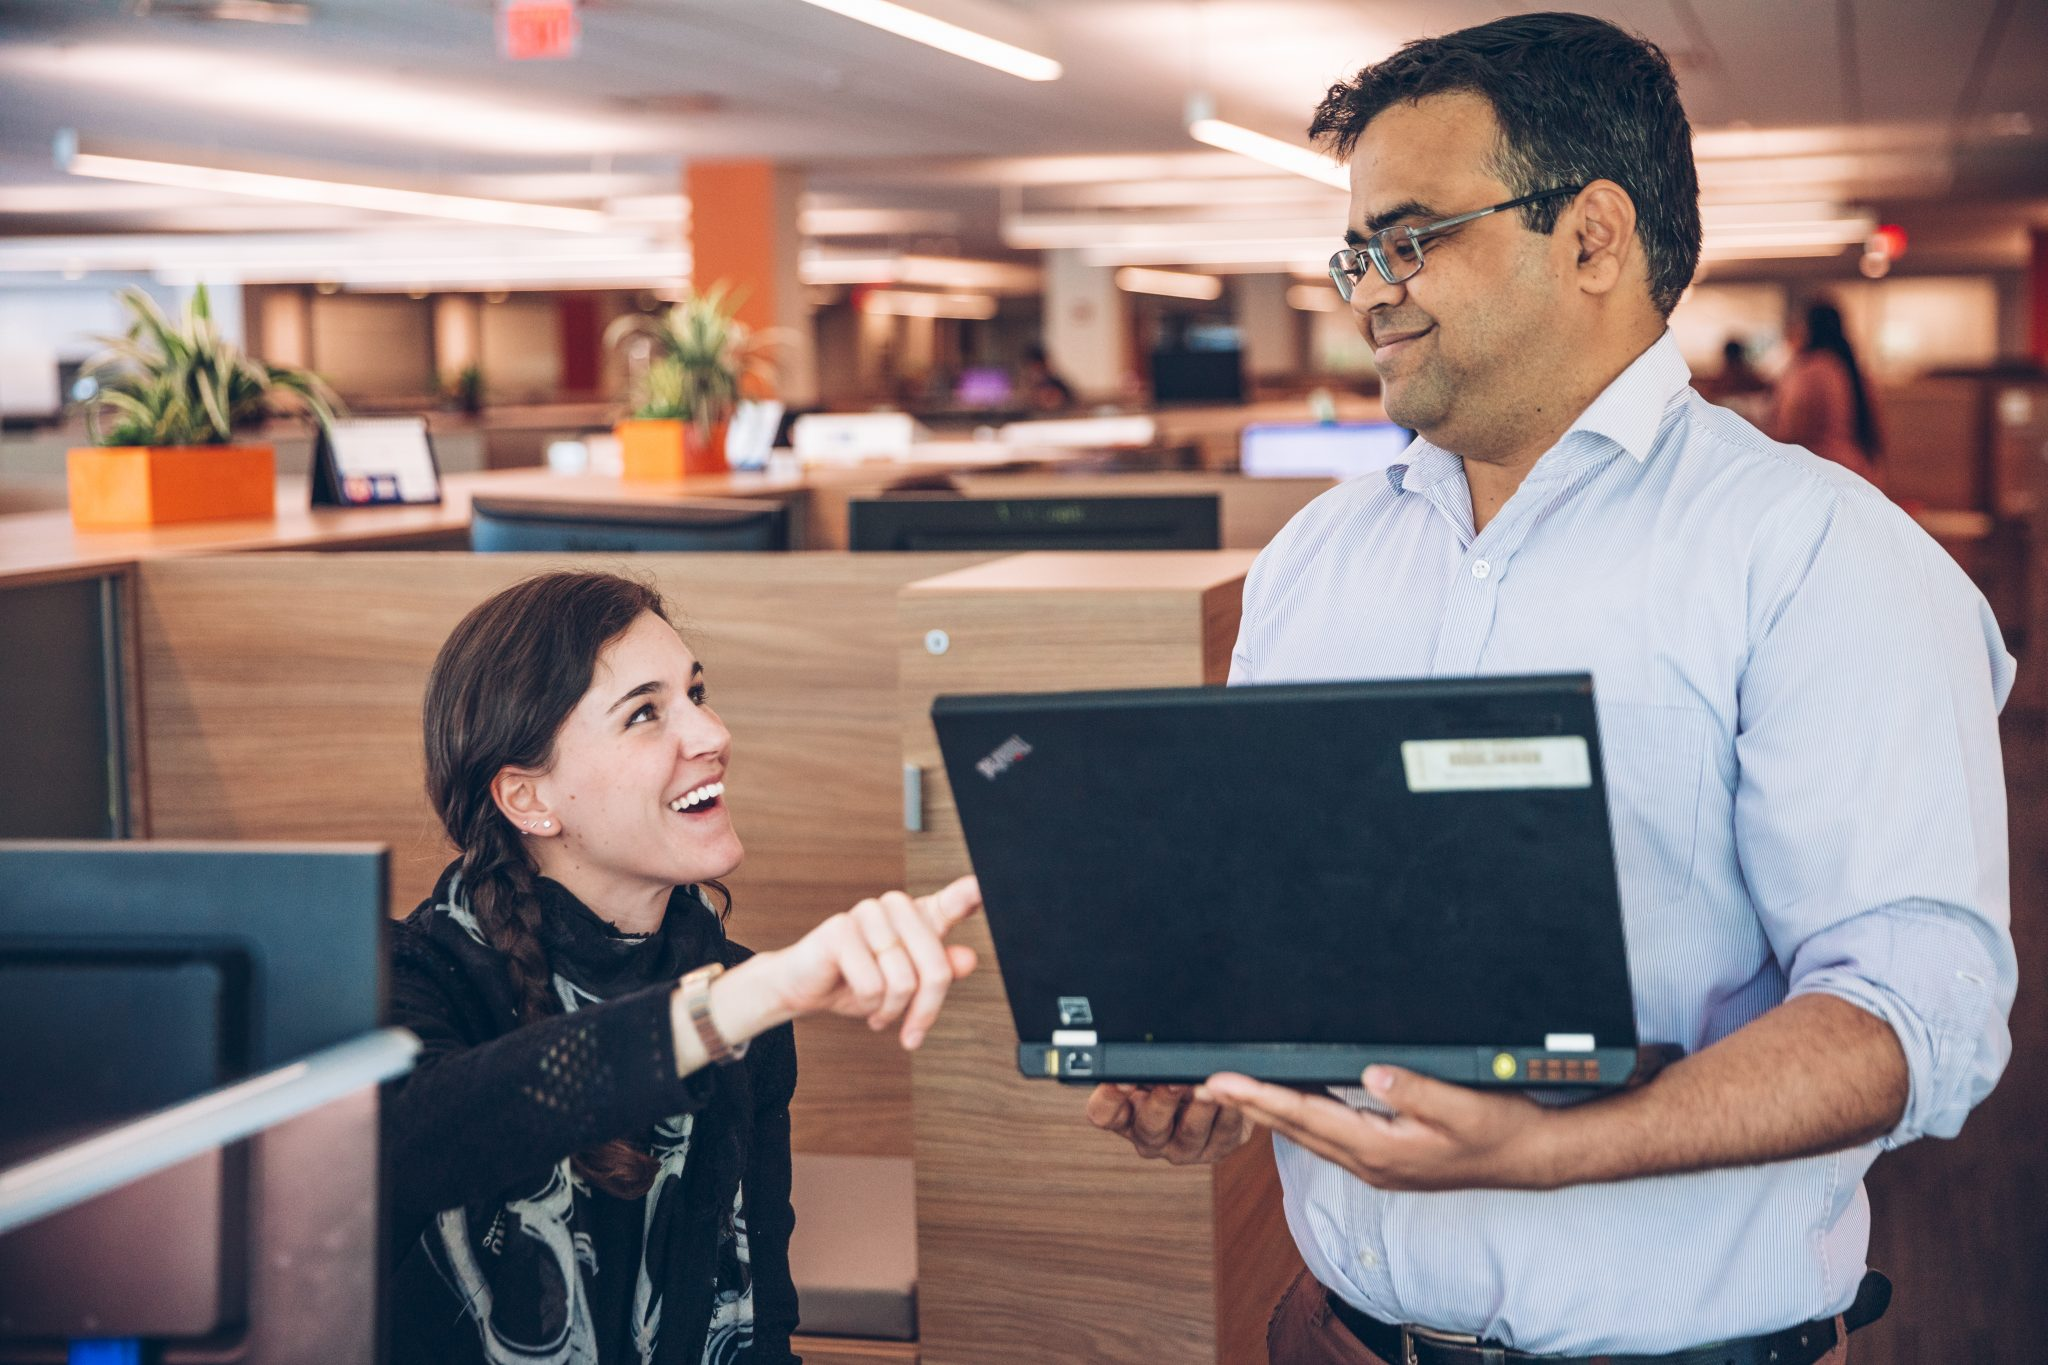 A seated women points at a standing colleagues computer and smiles